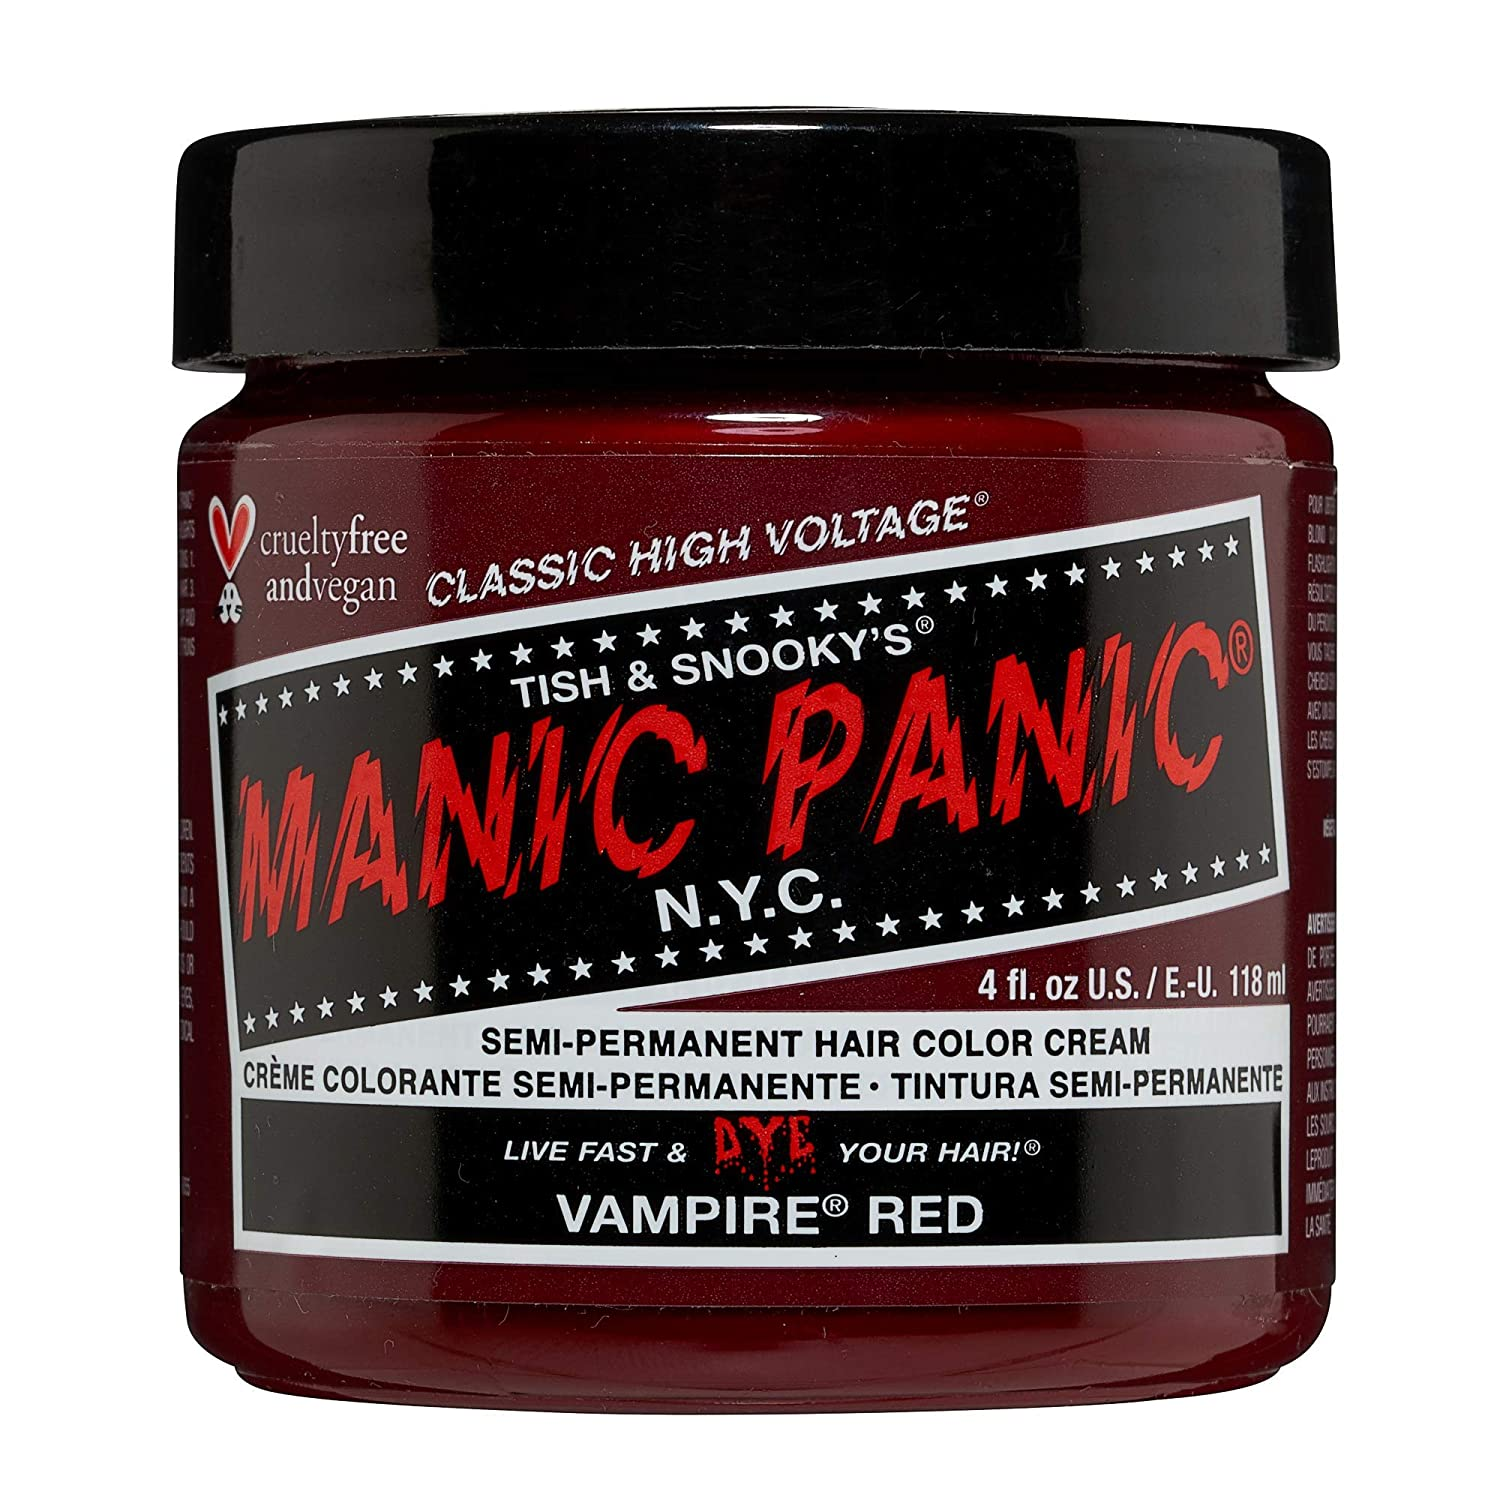 Manic Panic Vampire Red Hair Dye - Classic High Voltage - Semi Permanent Hair Color - Deep Blood Red Shade With Burgundy Tones - For Dark & Light Hair